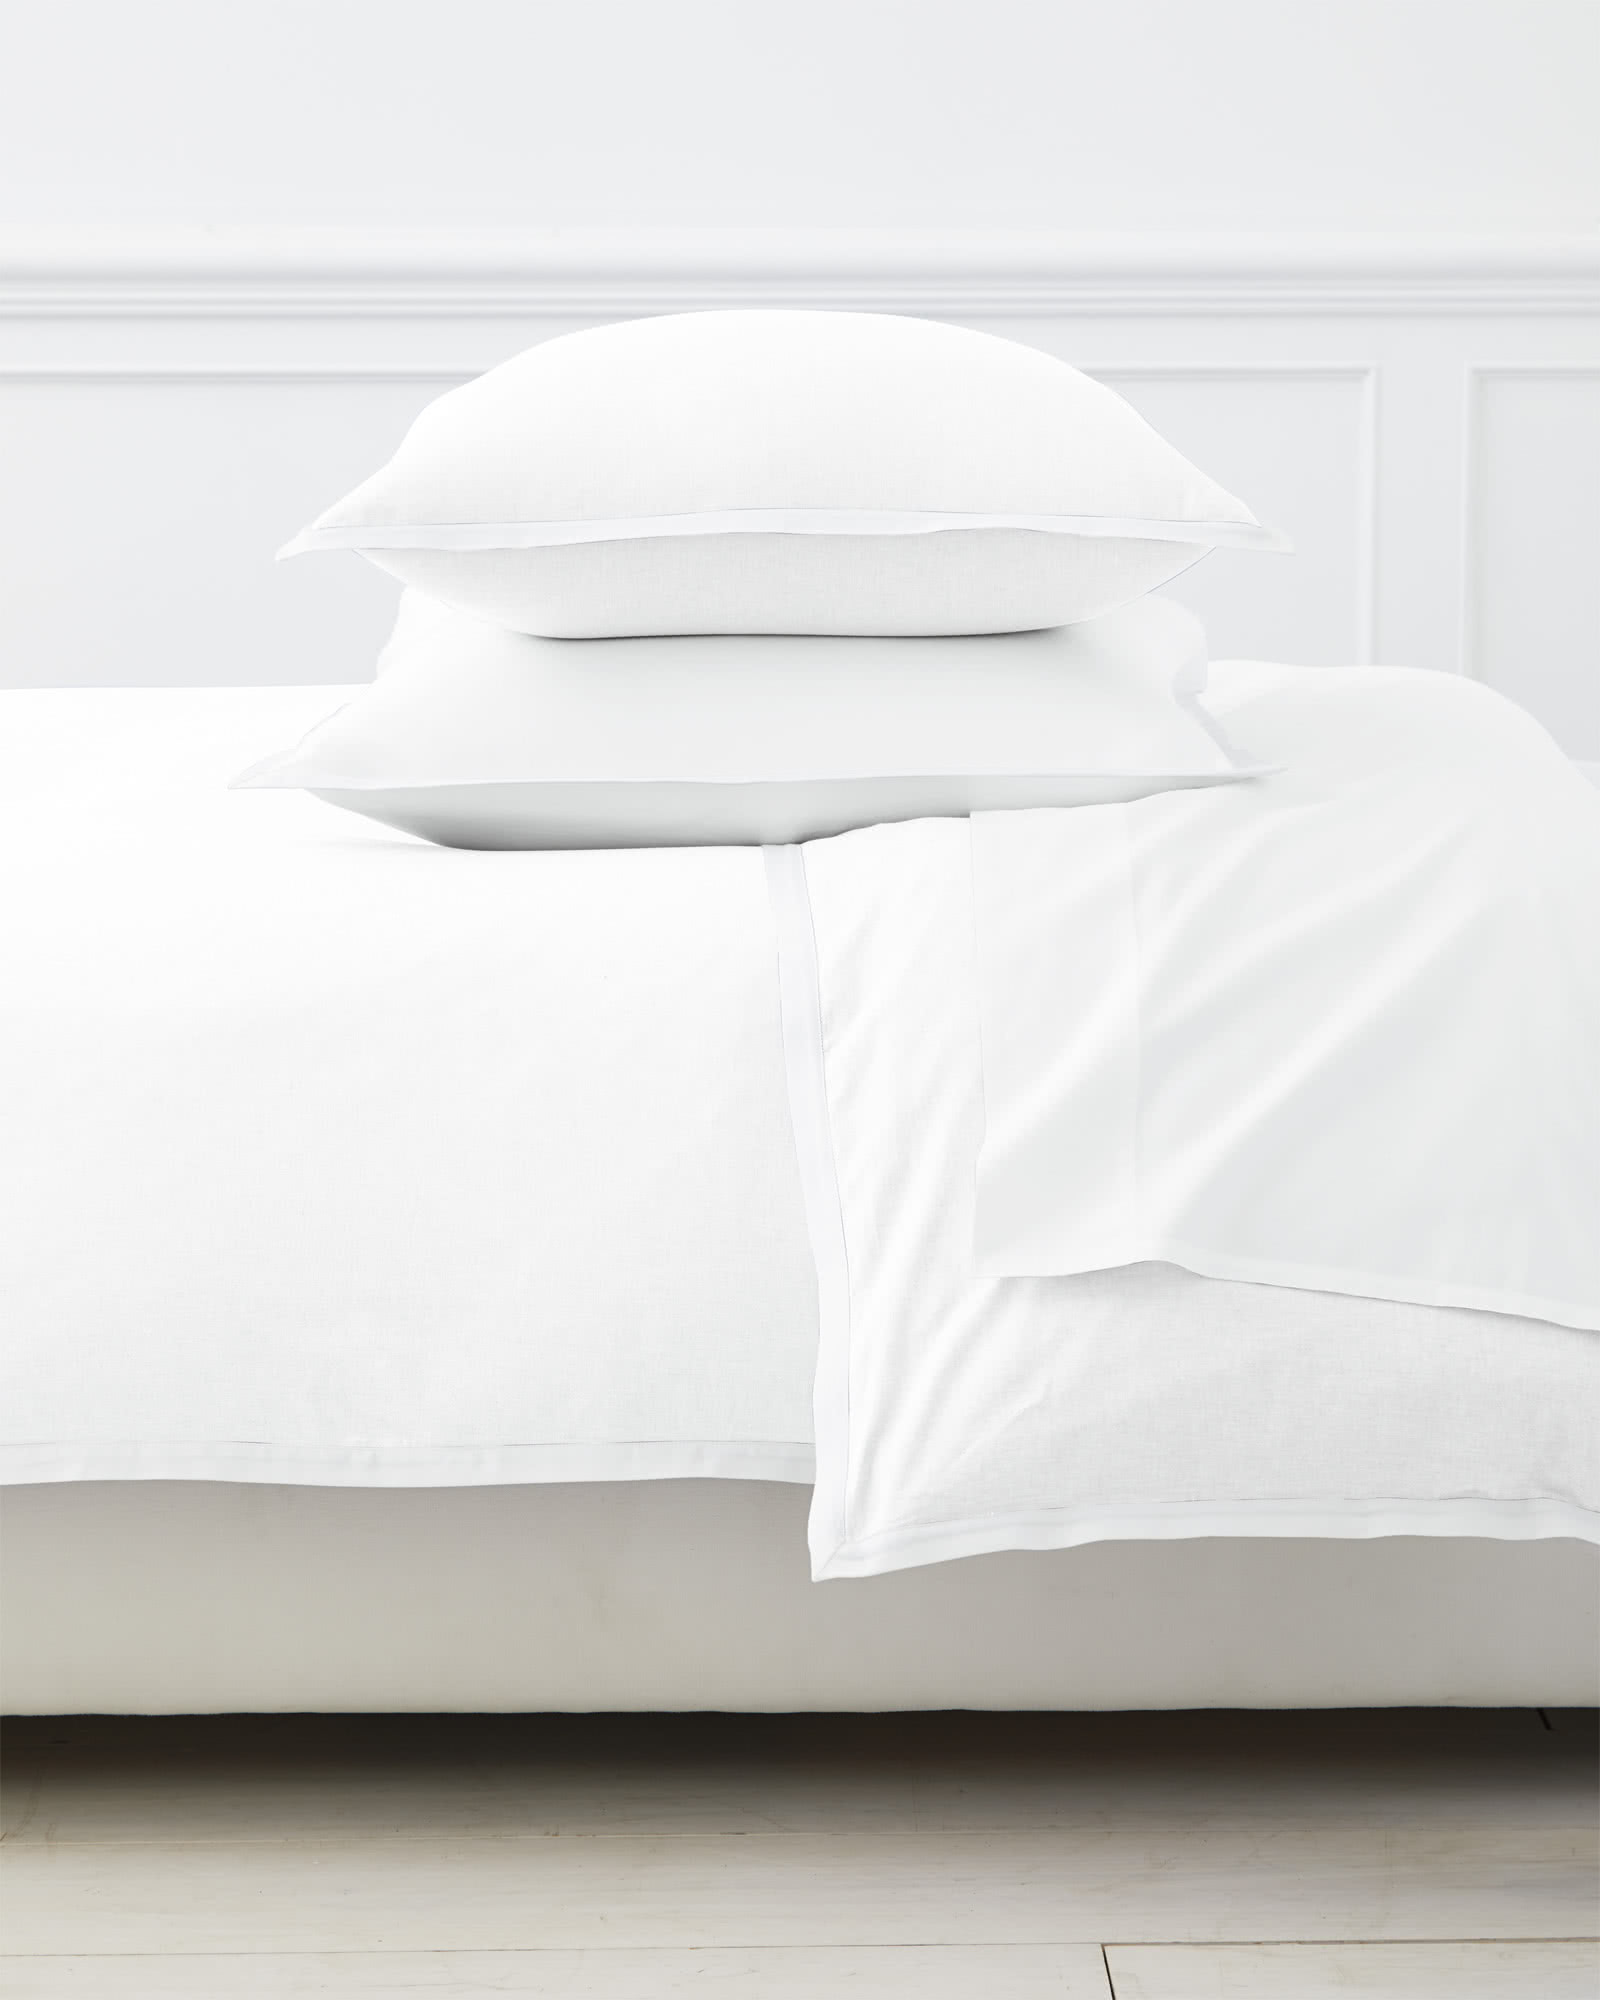 Wainscott Oxford Weave Duvet Cover, White